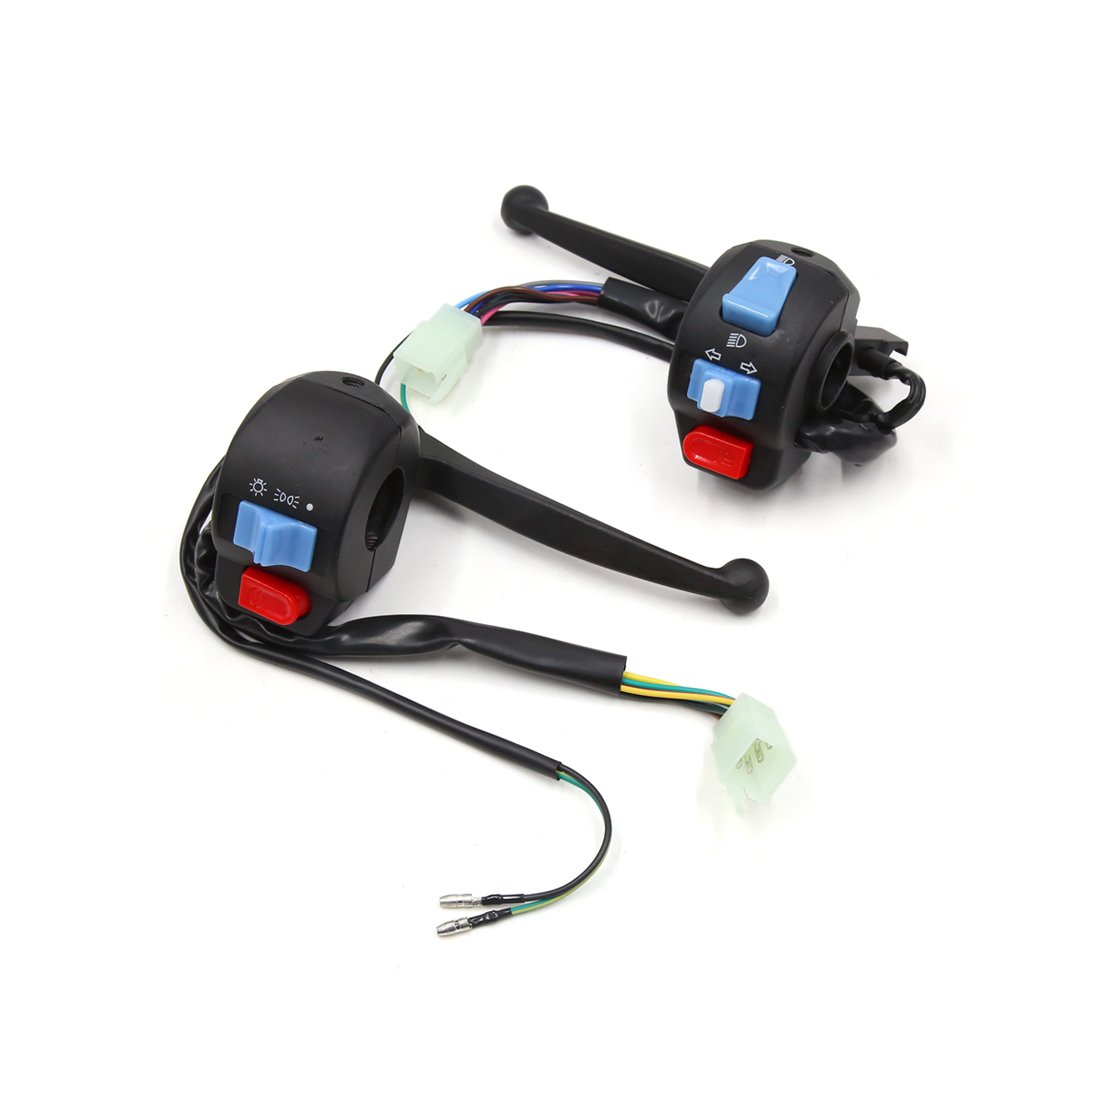 uxcell Pair Motorcycle Handlebar Horn Turn Signal Light ON/OFF Control Switch for GY6 150cc